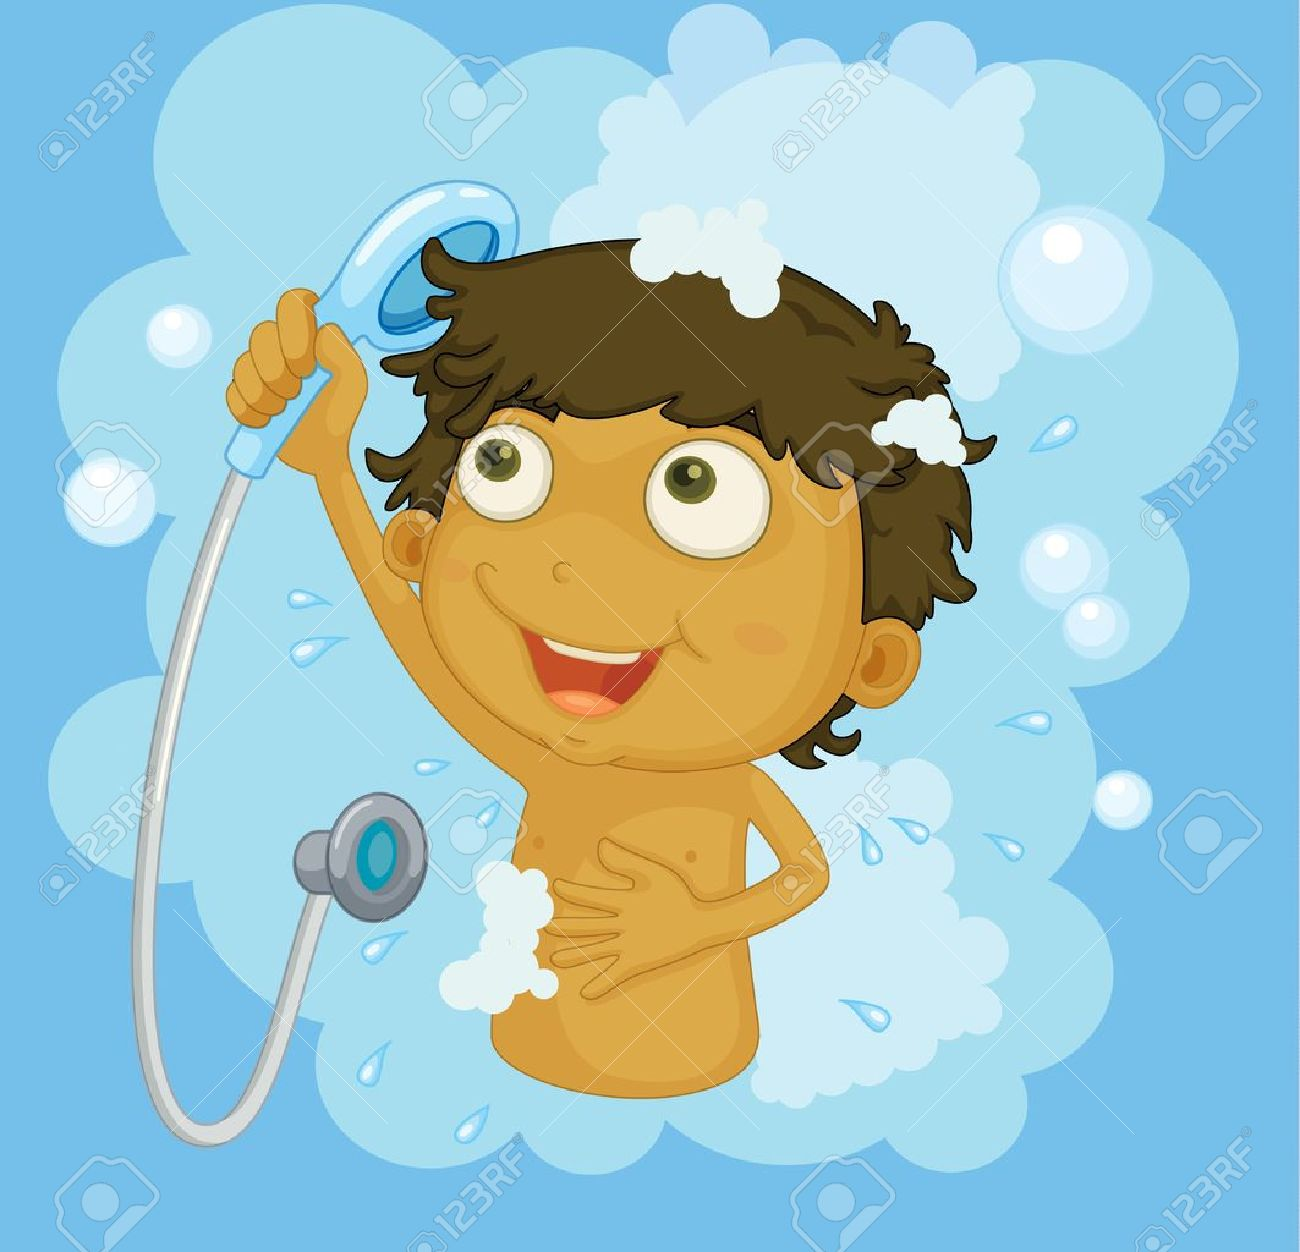 Showering Cliparts Free Download Clip Art.